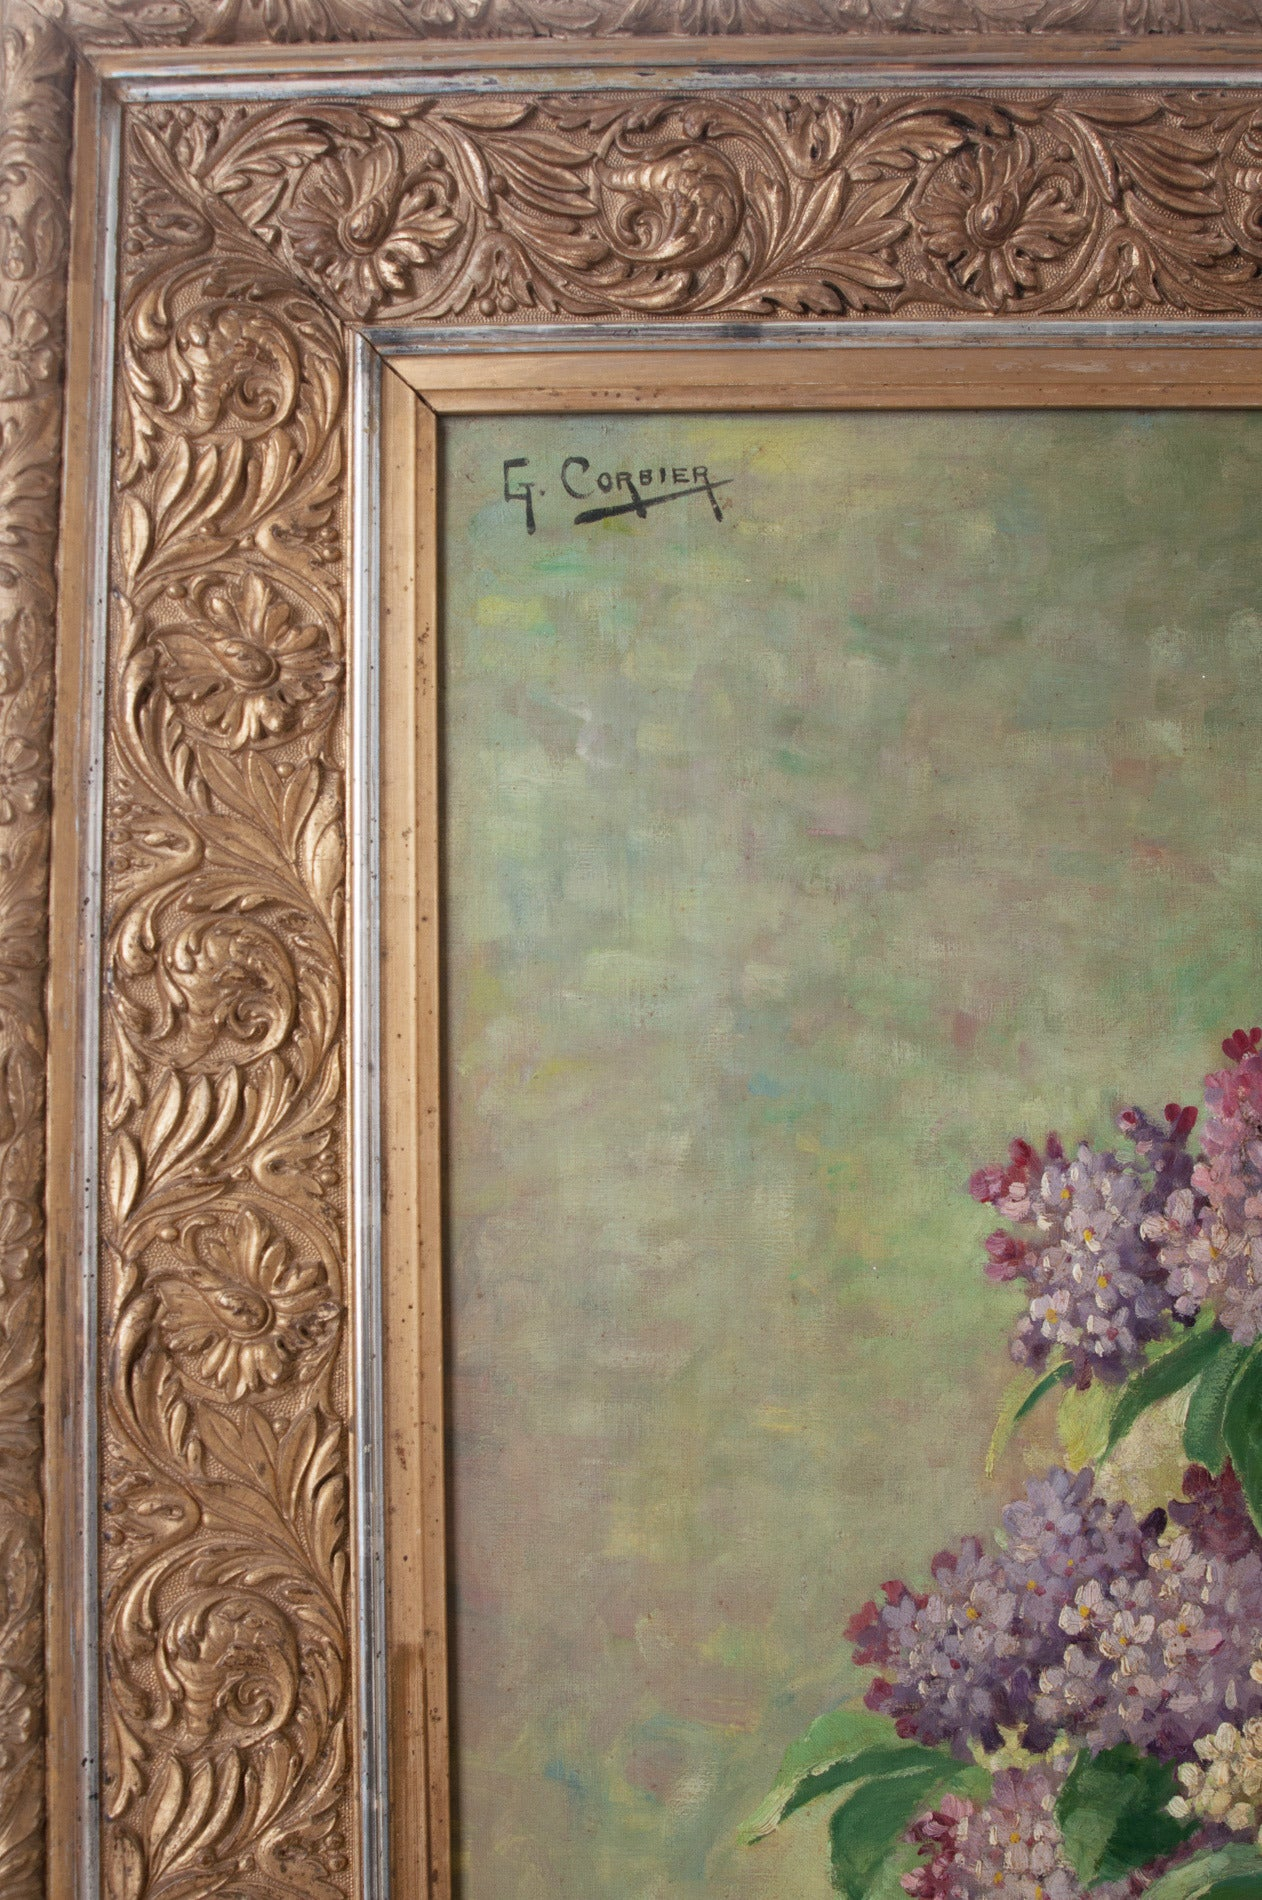 G. Corbier Oil Painting of Lilac Flowers with Carved Gilt Frame For Sale 1